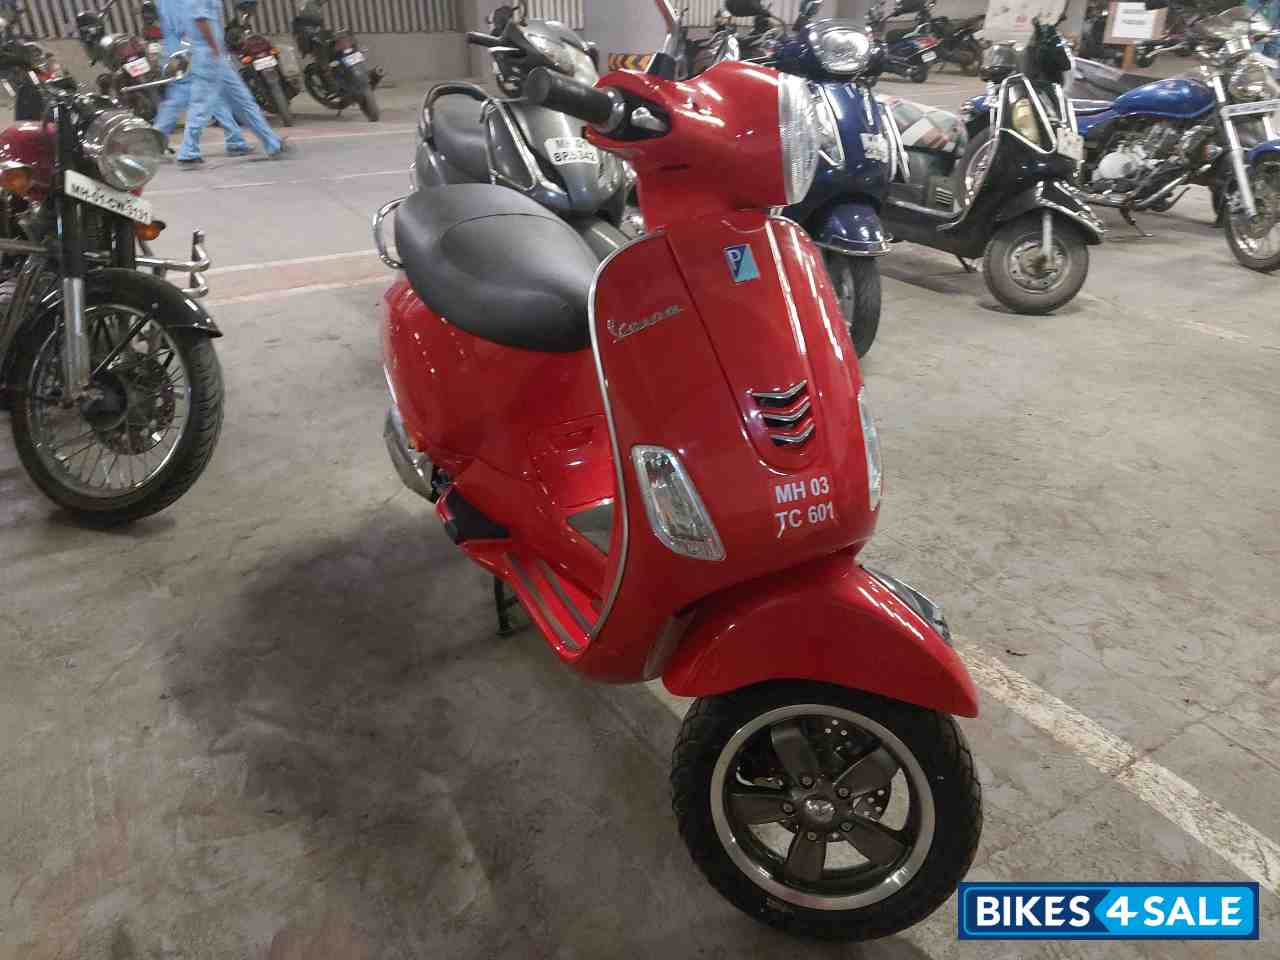 Red Vespa VXL 125 BS6